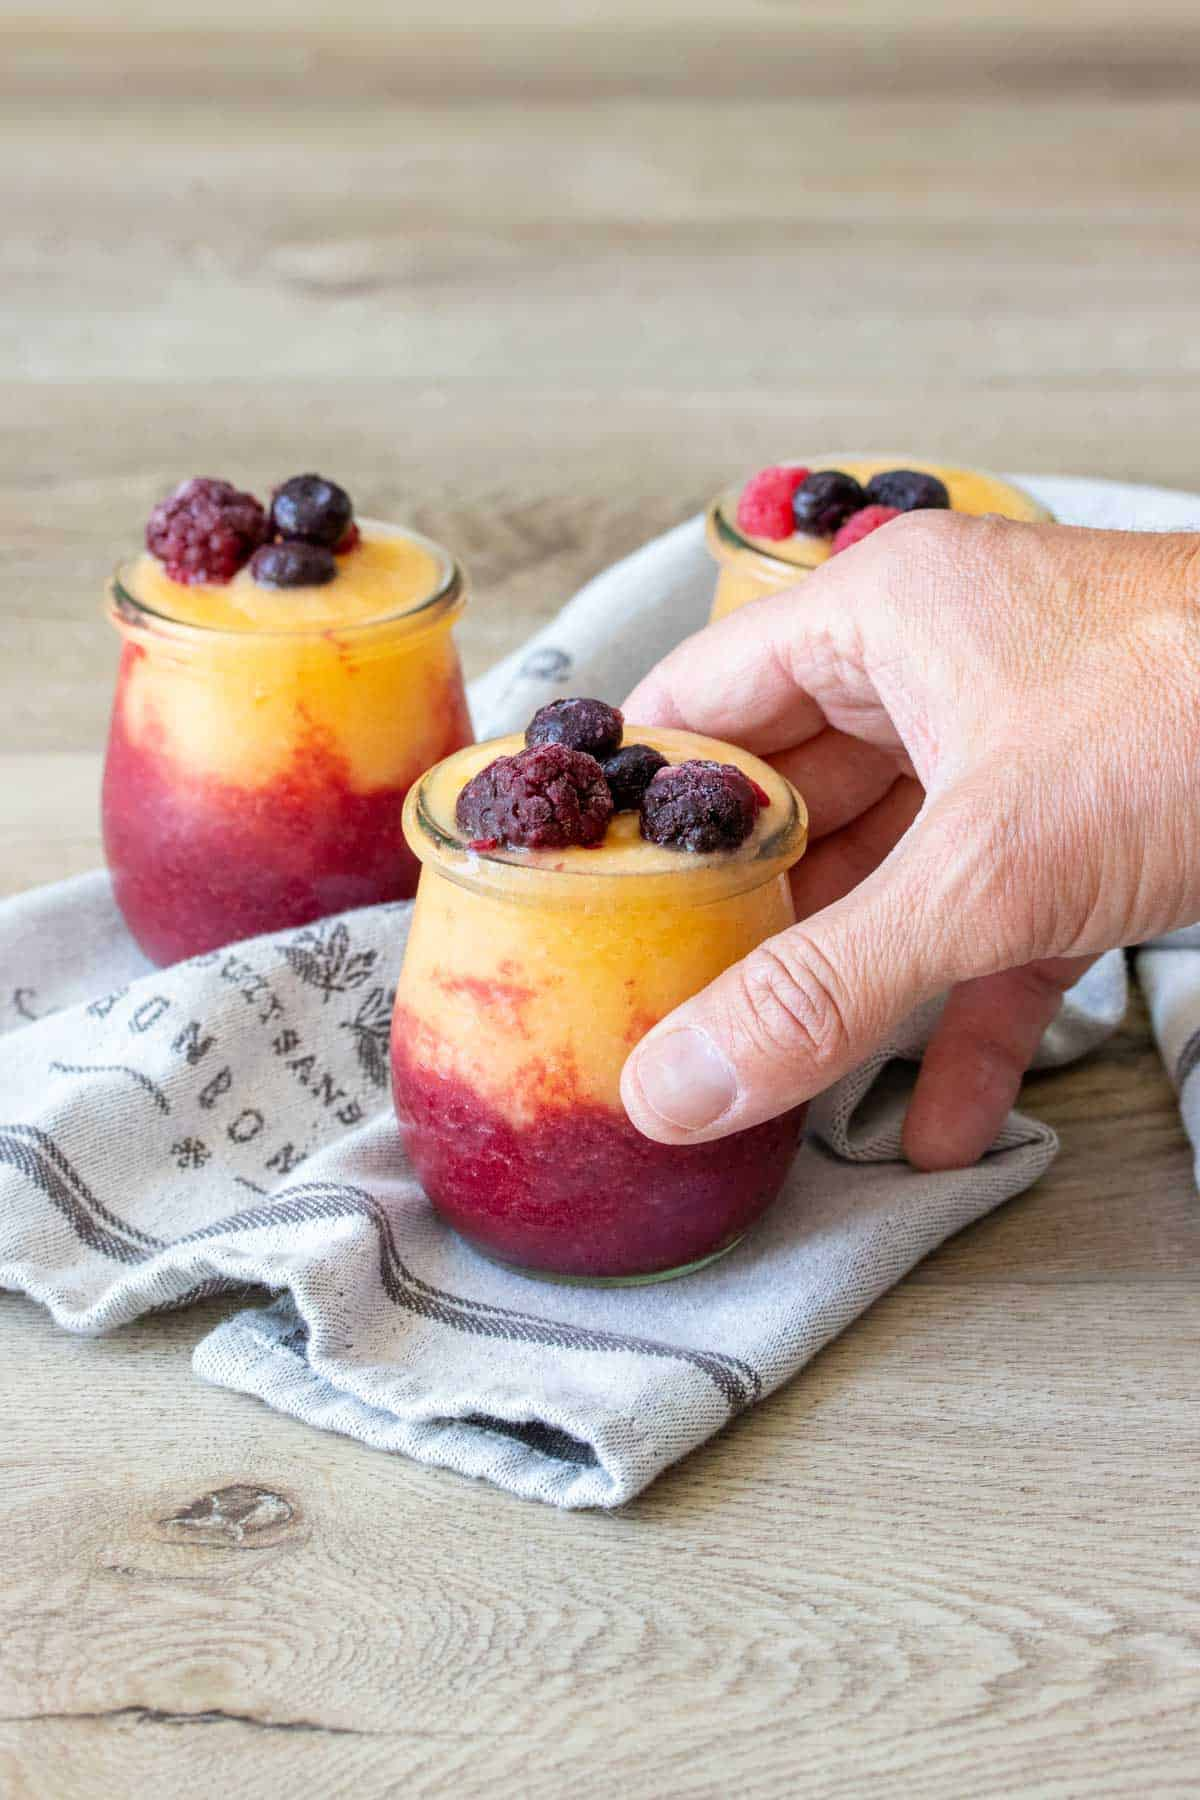 Hand grabbing a jar filled with a wine slushie topped with fruit